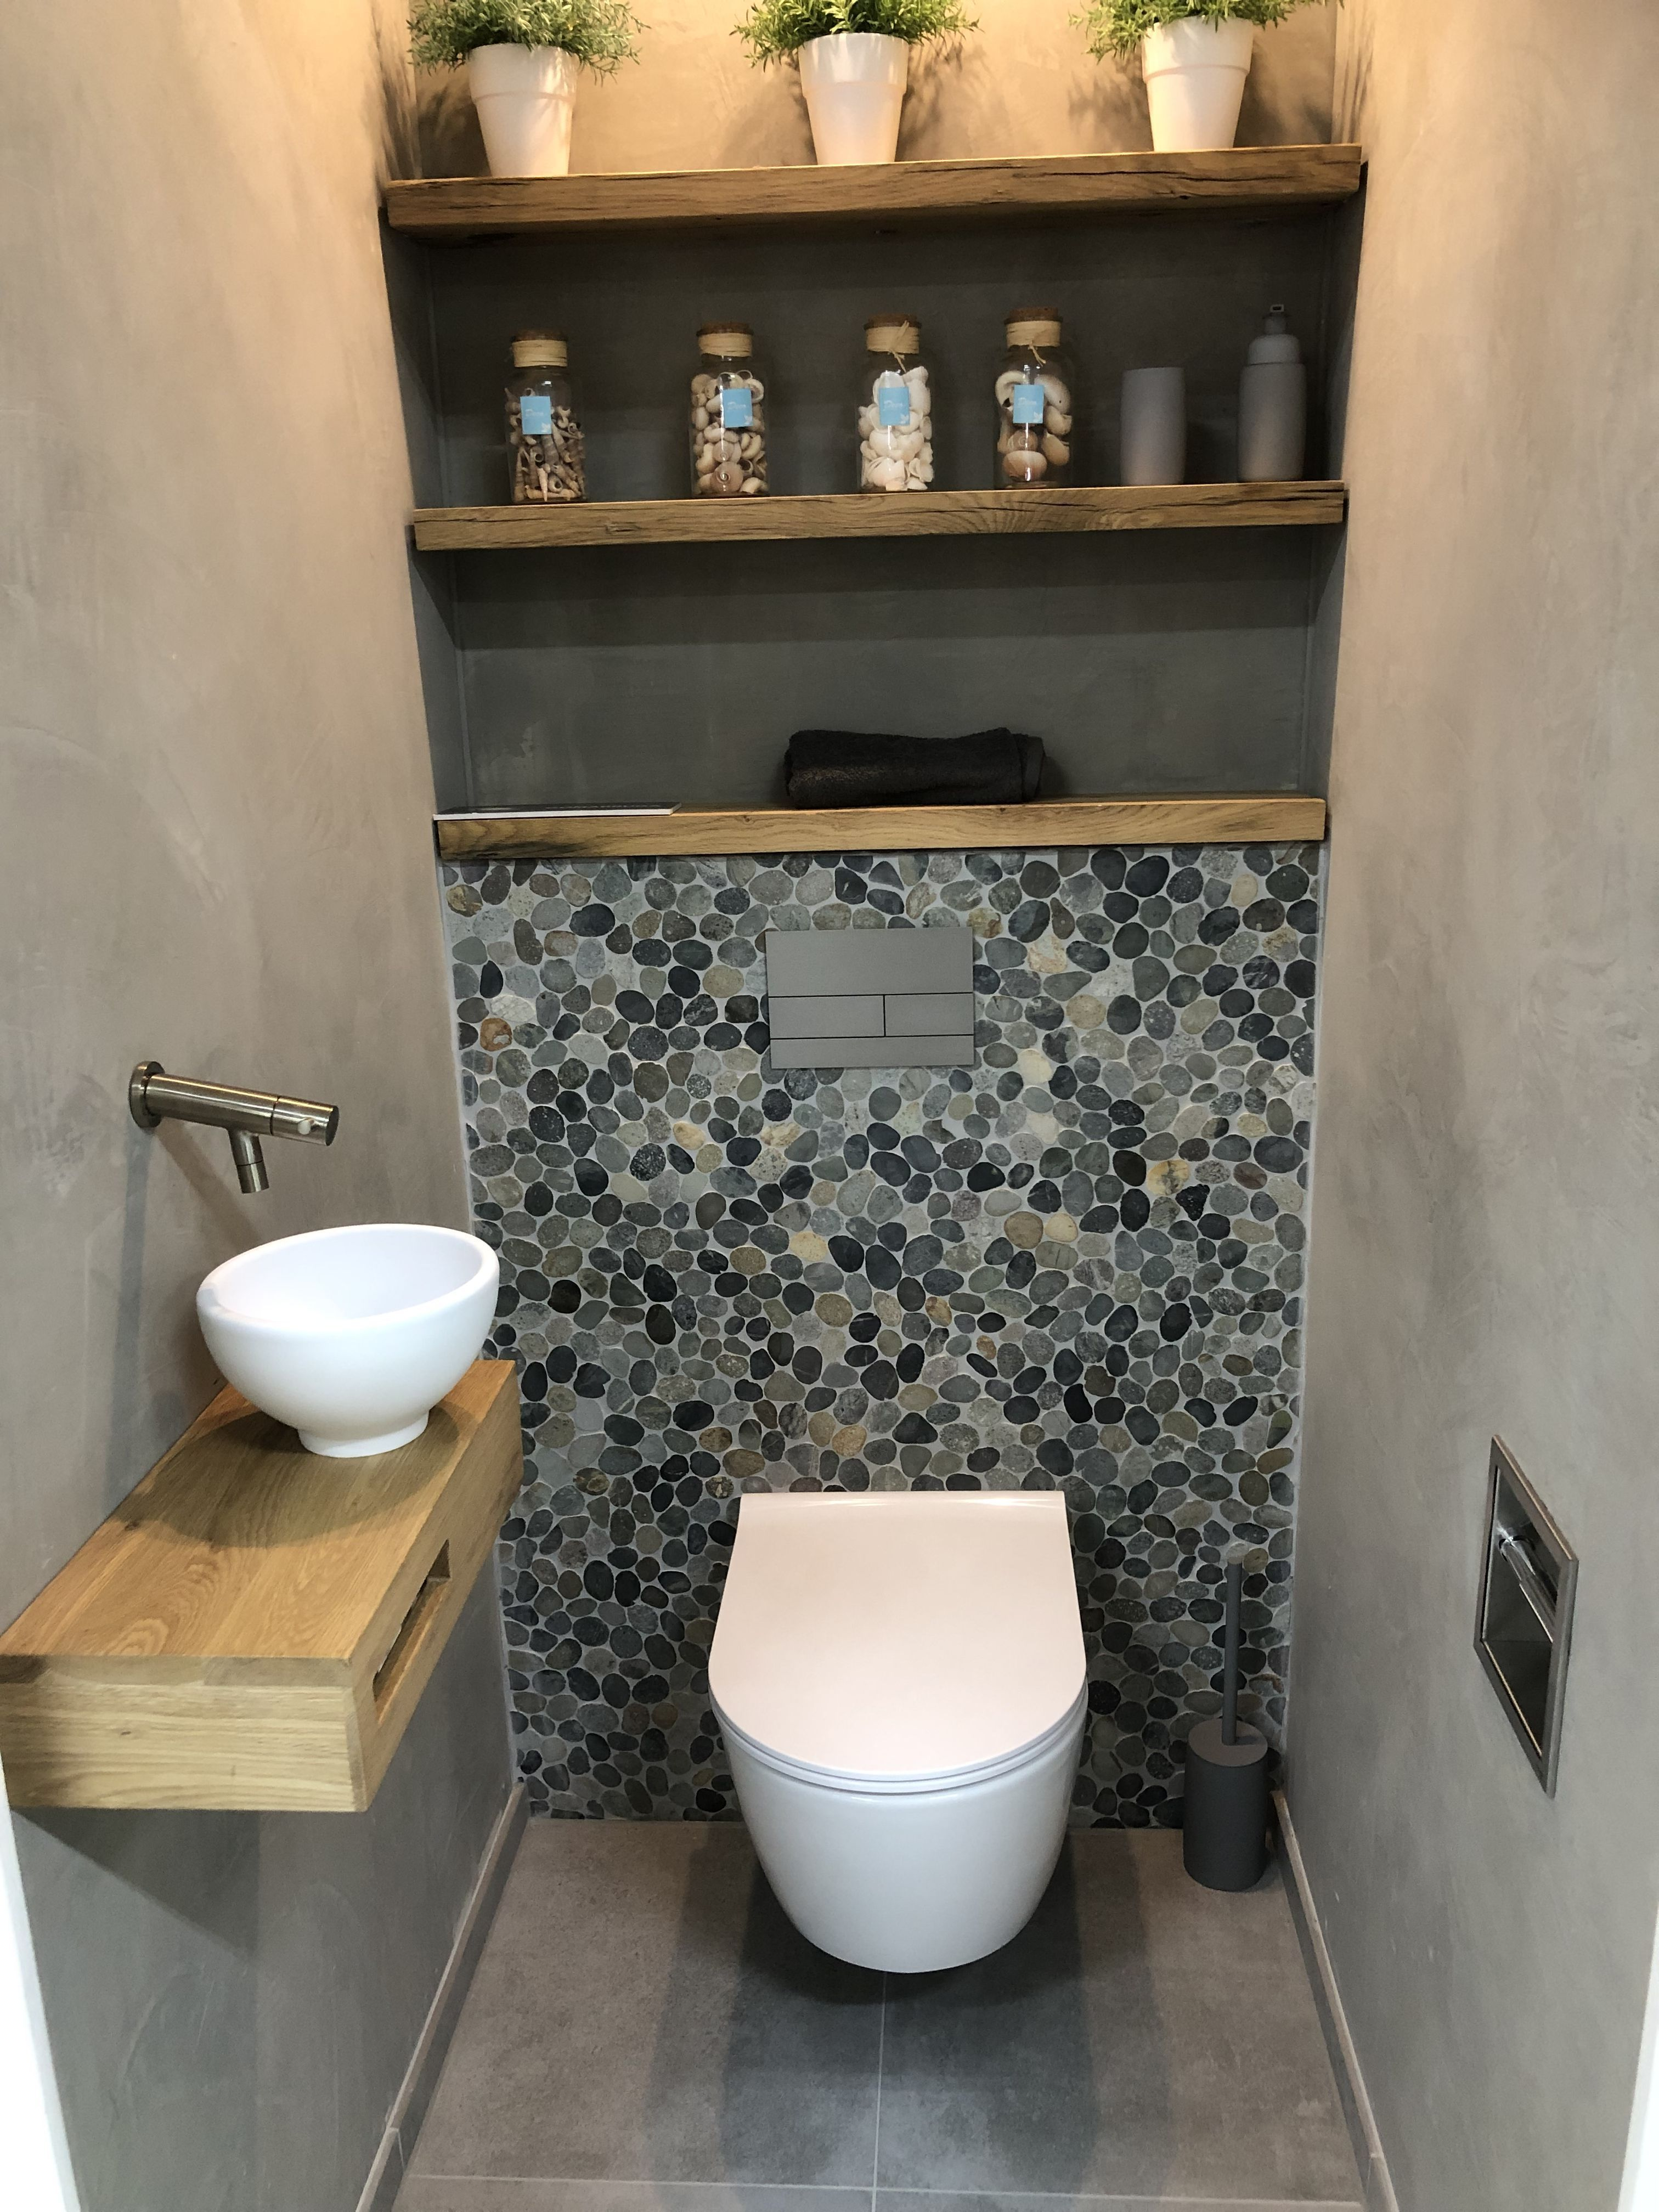 Kleine Toilette Entrance Tile #super #toilet #trendy #wcinrichting Log On Mats Are Often Taken For Granted. Well, If You… | Moderne Toilette, Wc Im Erdgeschoss, Wohnung Badezimmer